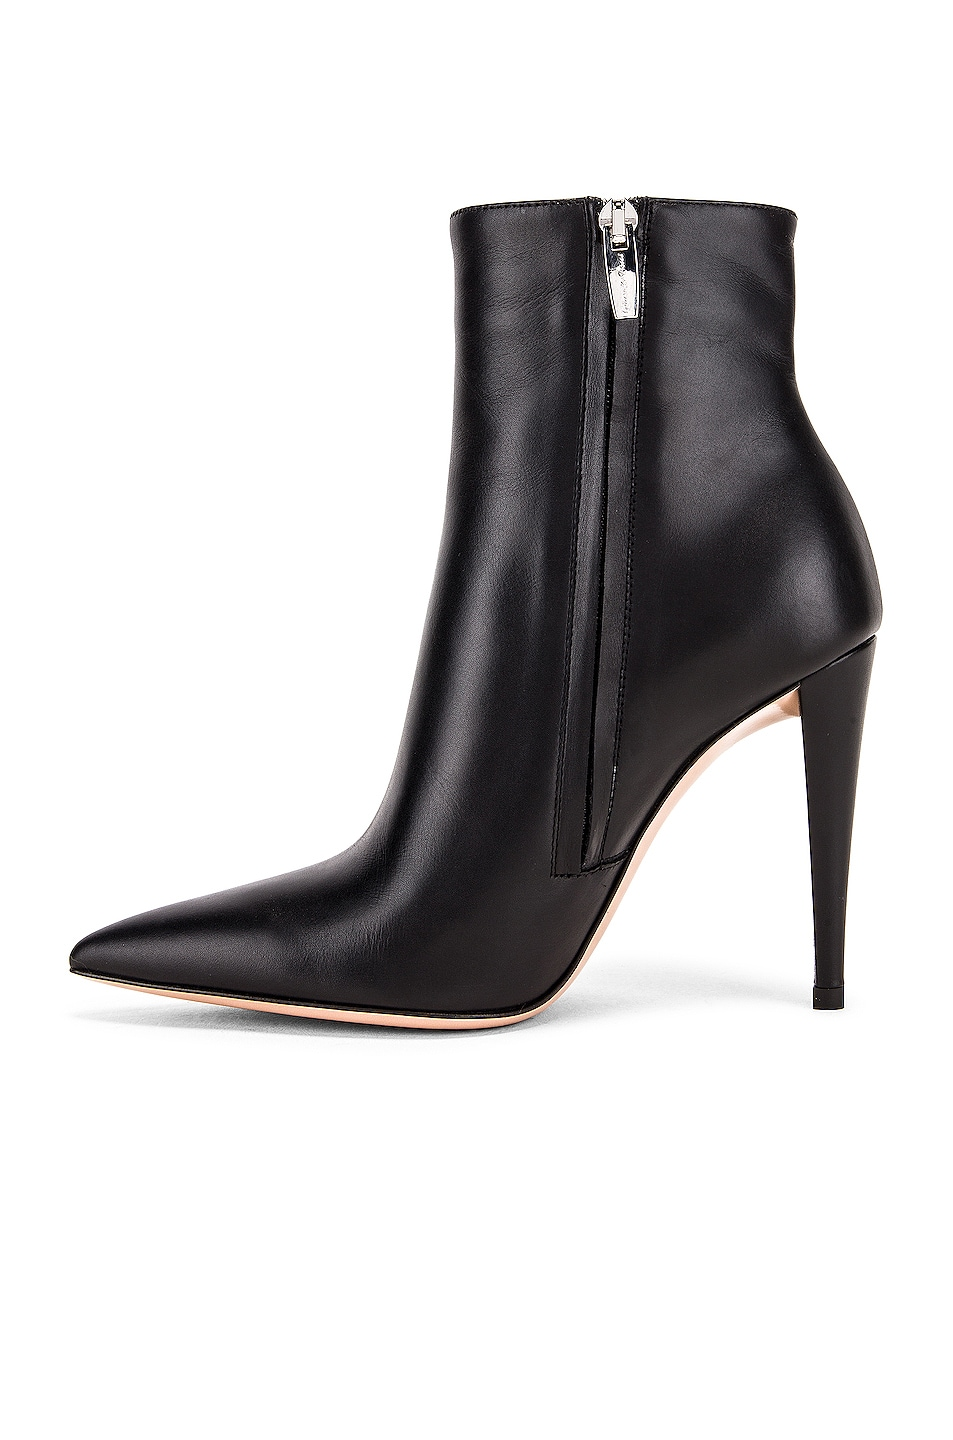 Image 5 of Gianvito Rossi Scarlet Ankle Heel Booties in Black